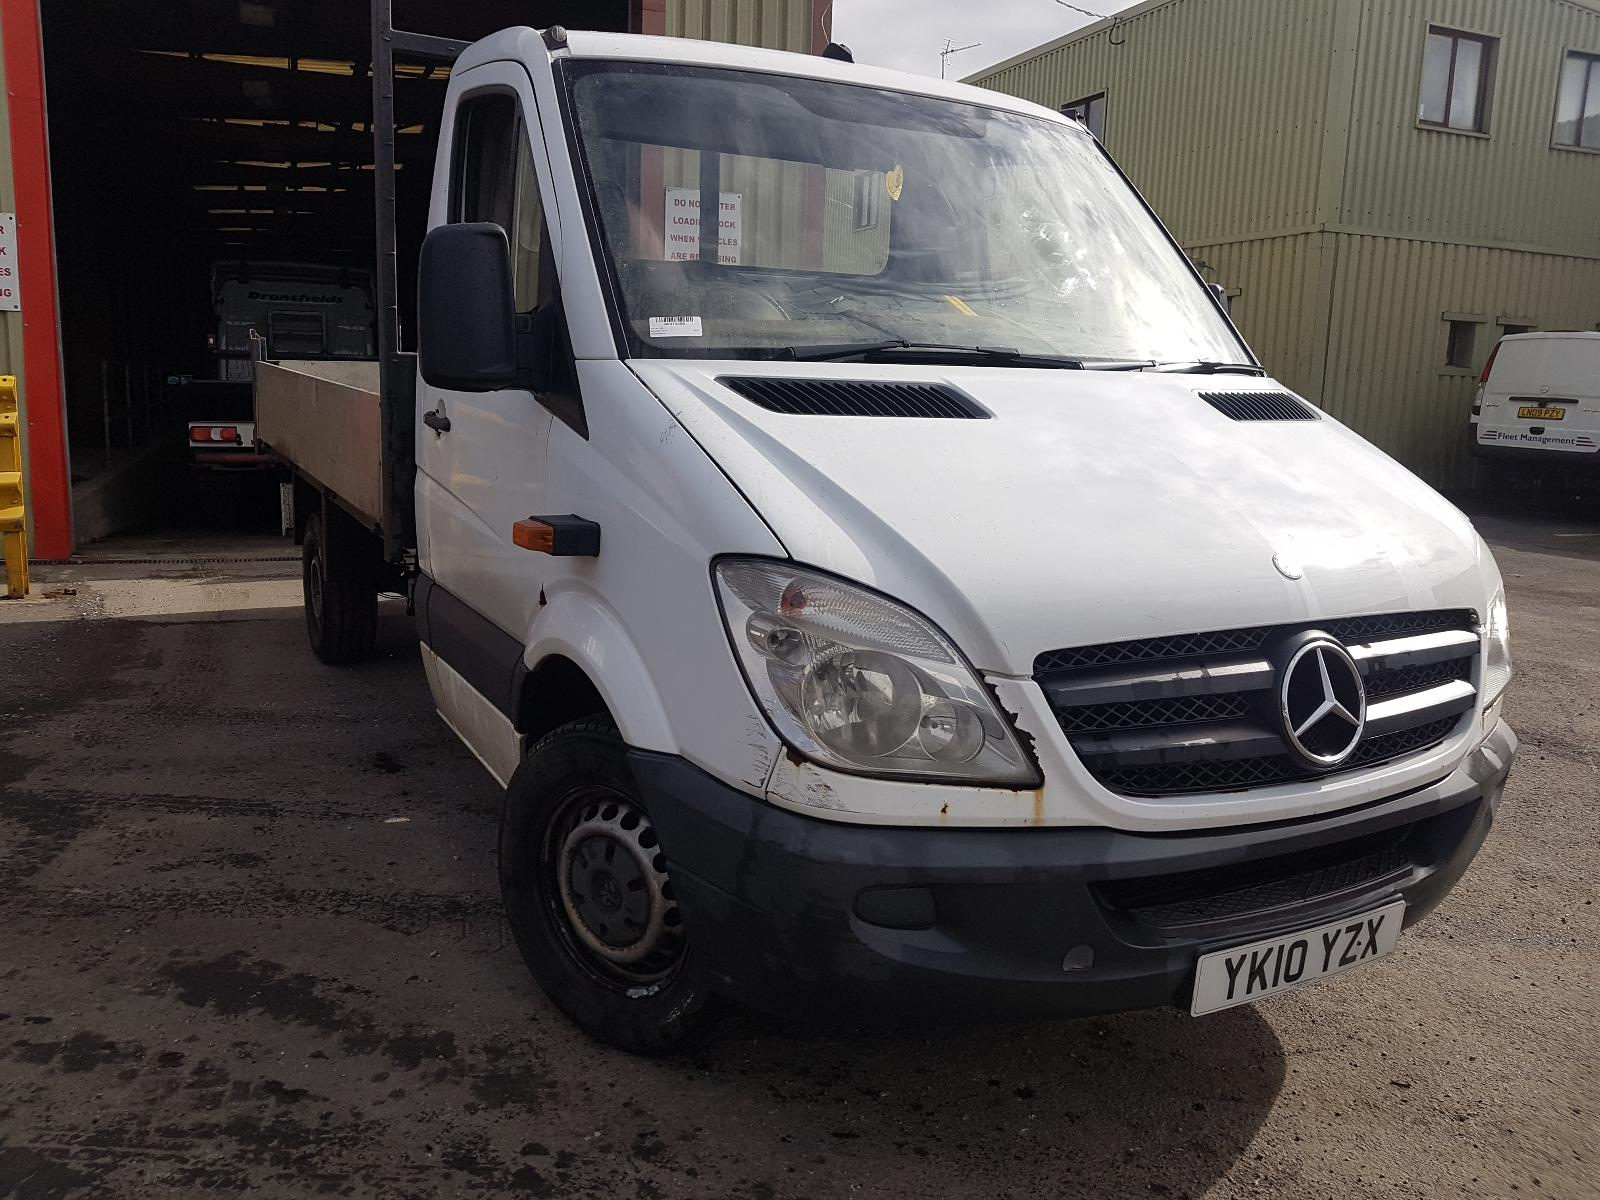 Image for a Mercedes Sprinter 2010 Unknown Unknown